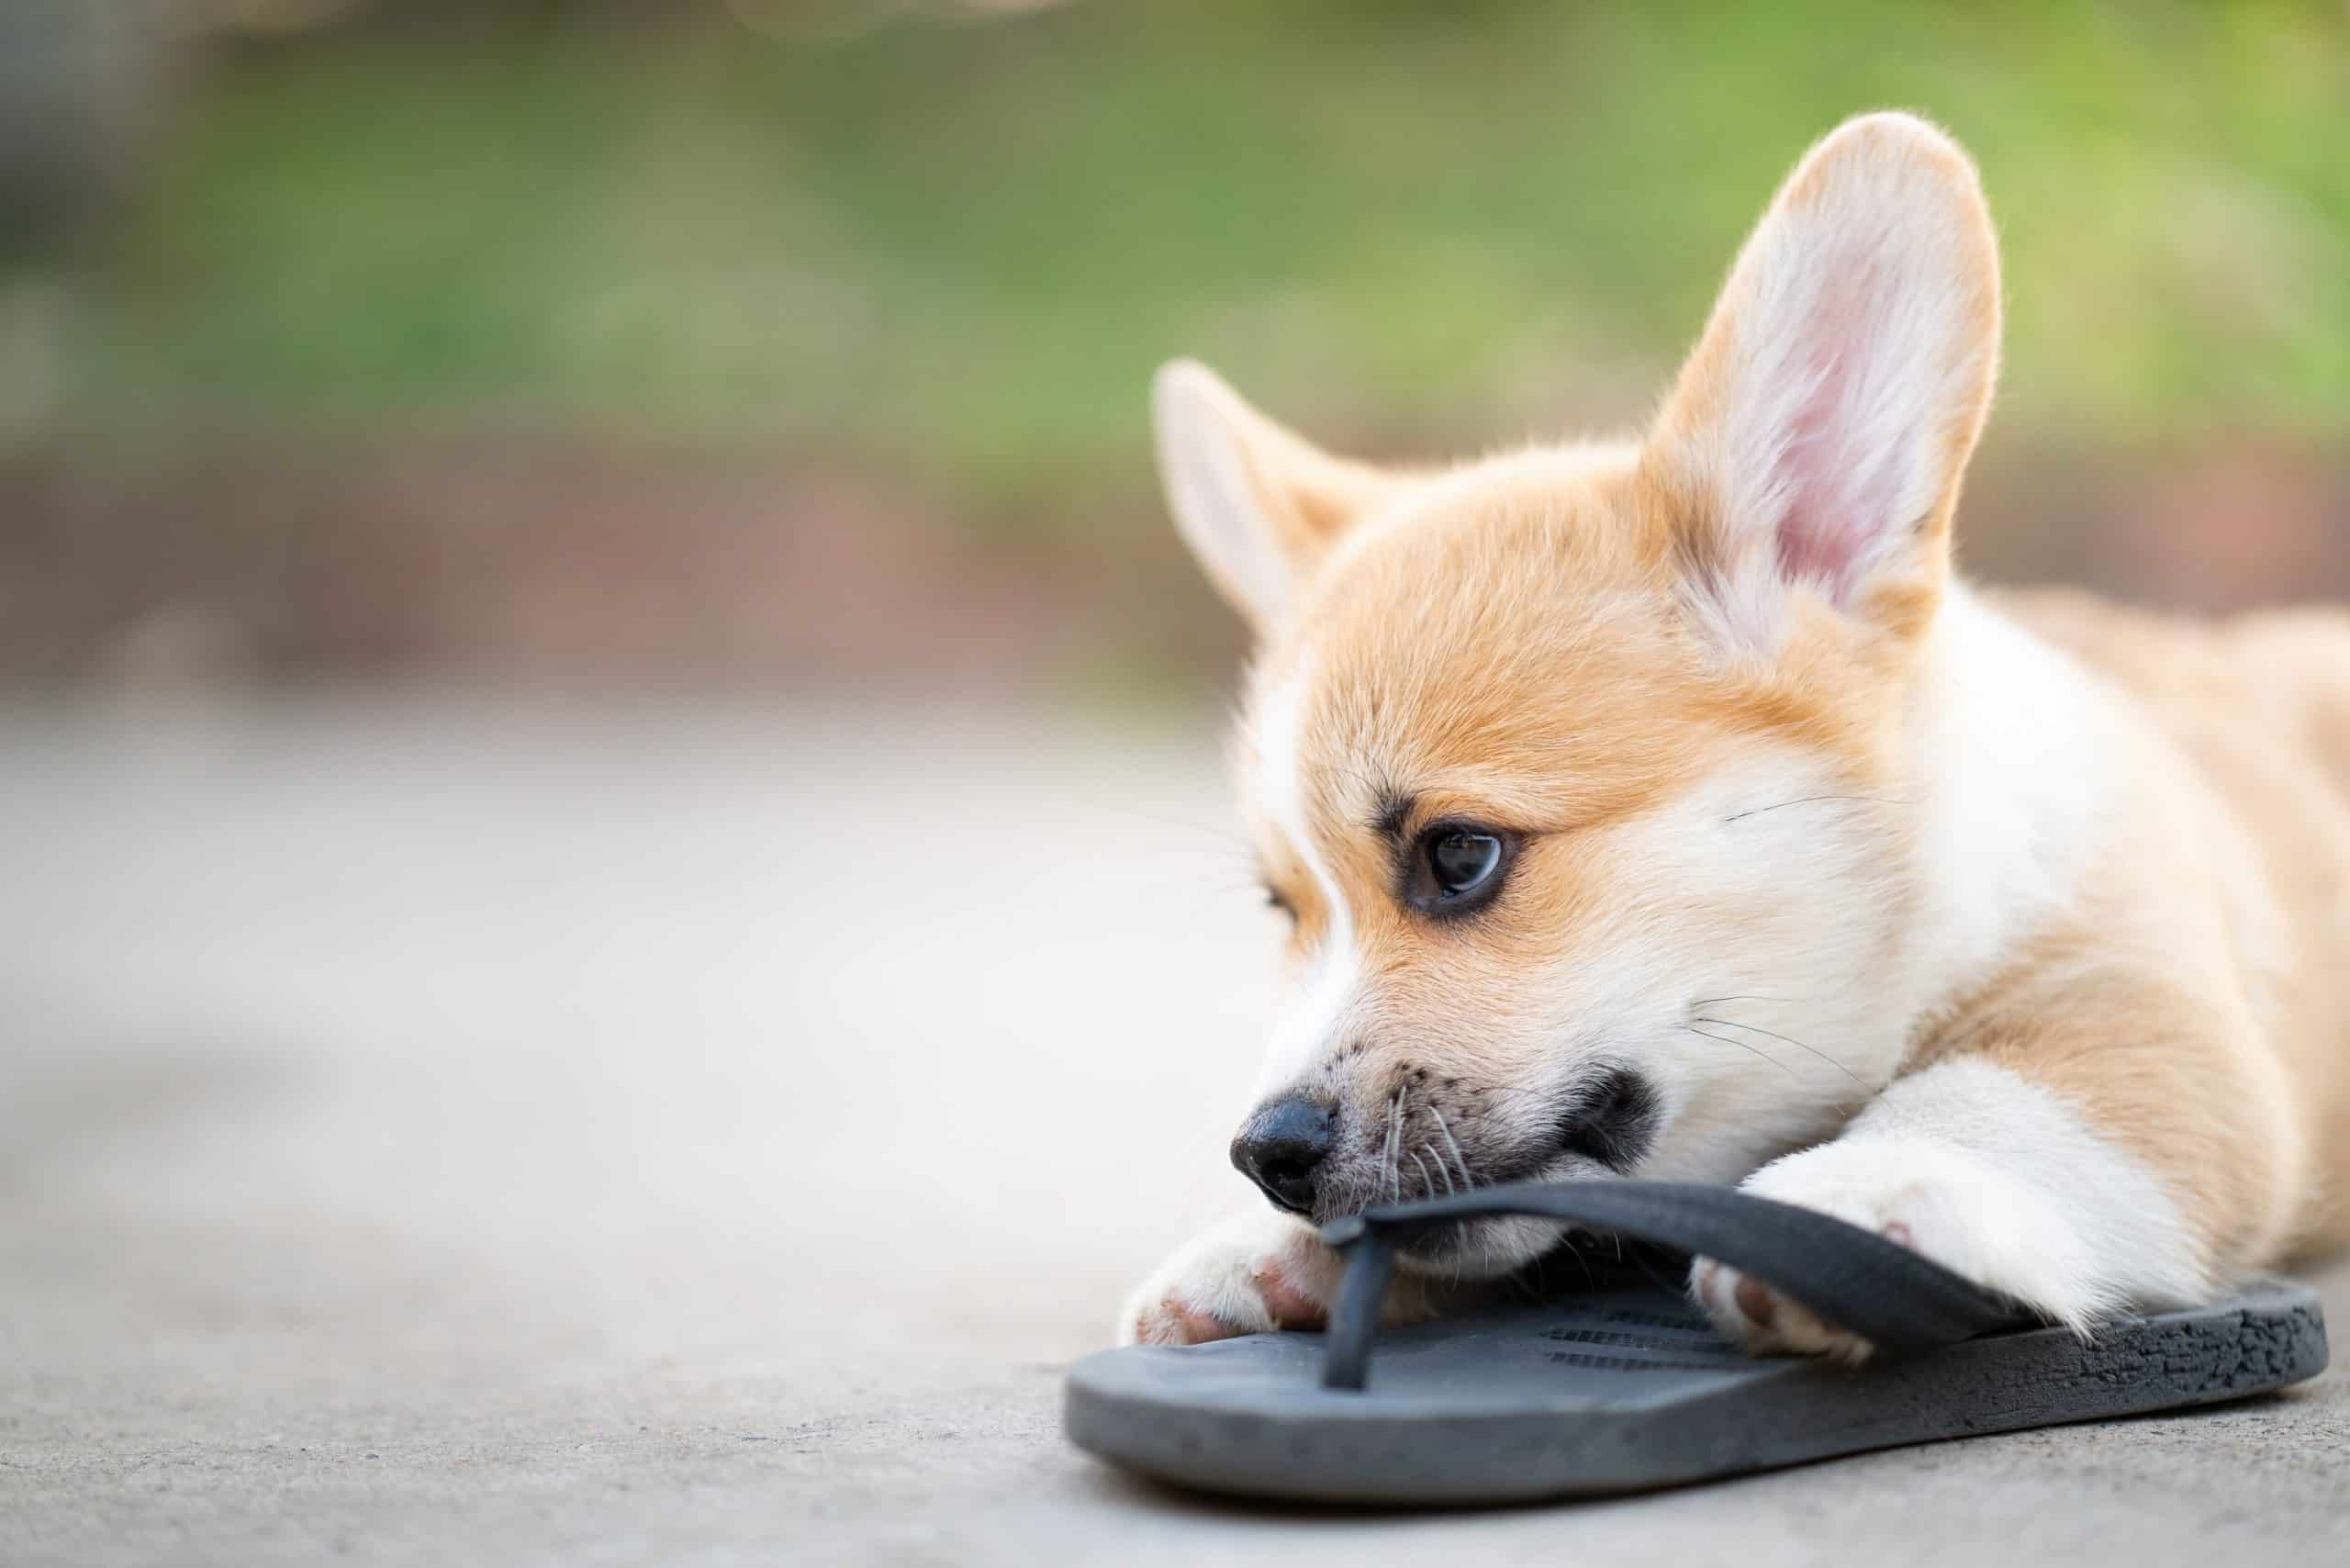 Welsh corgi dog pembroke puppy chewing on owners shoes